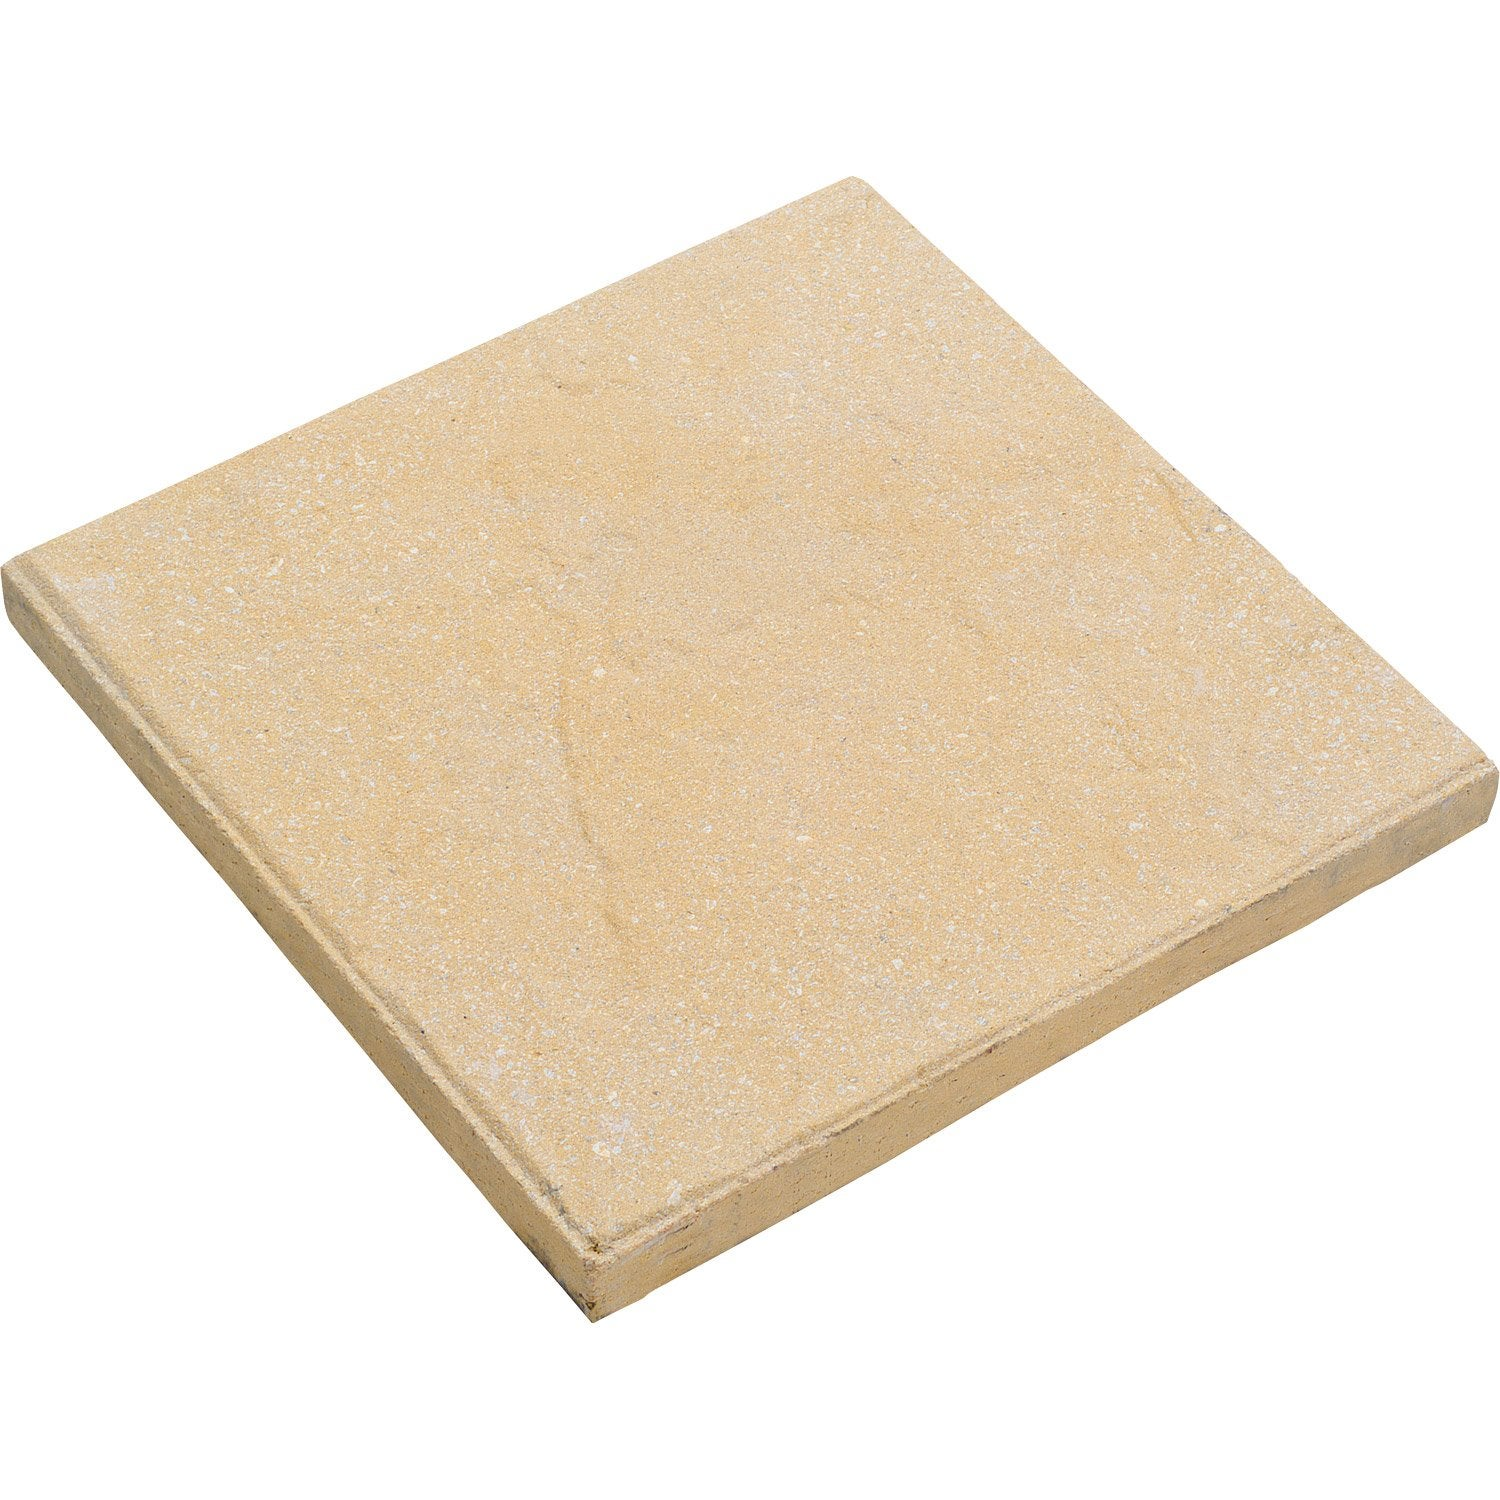 Dalle b ton vercors beige x cm x mm for Plot beton leroy merlin